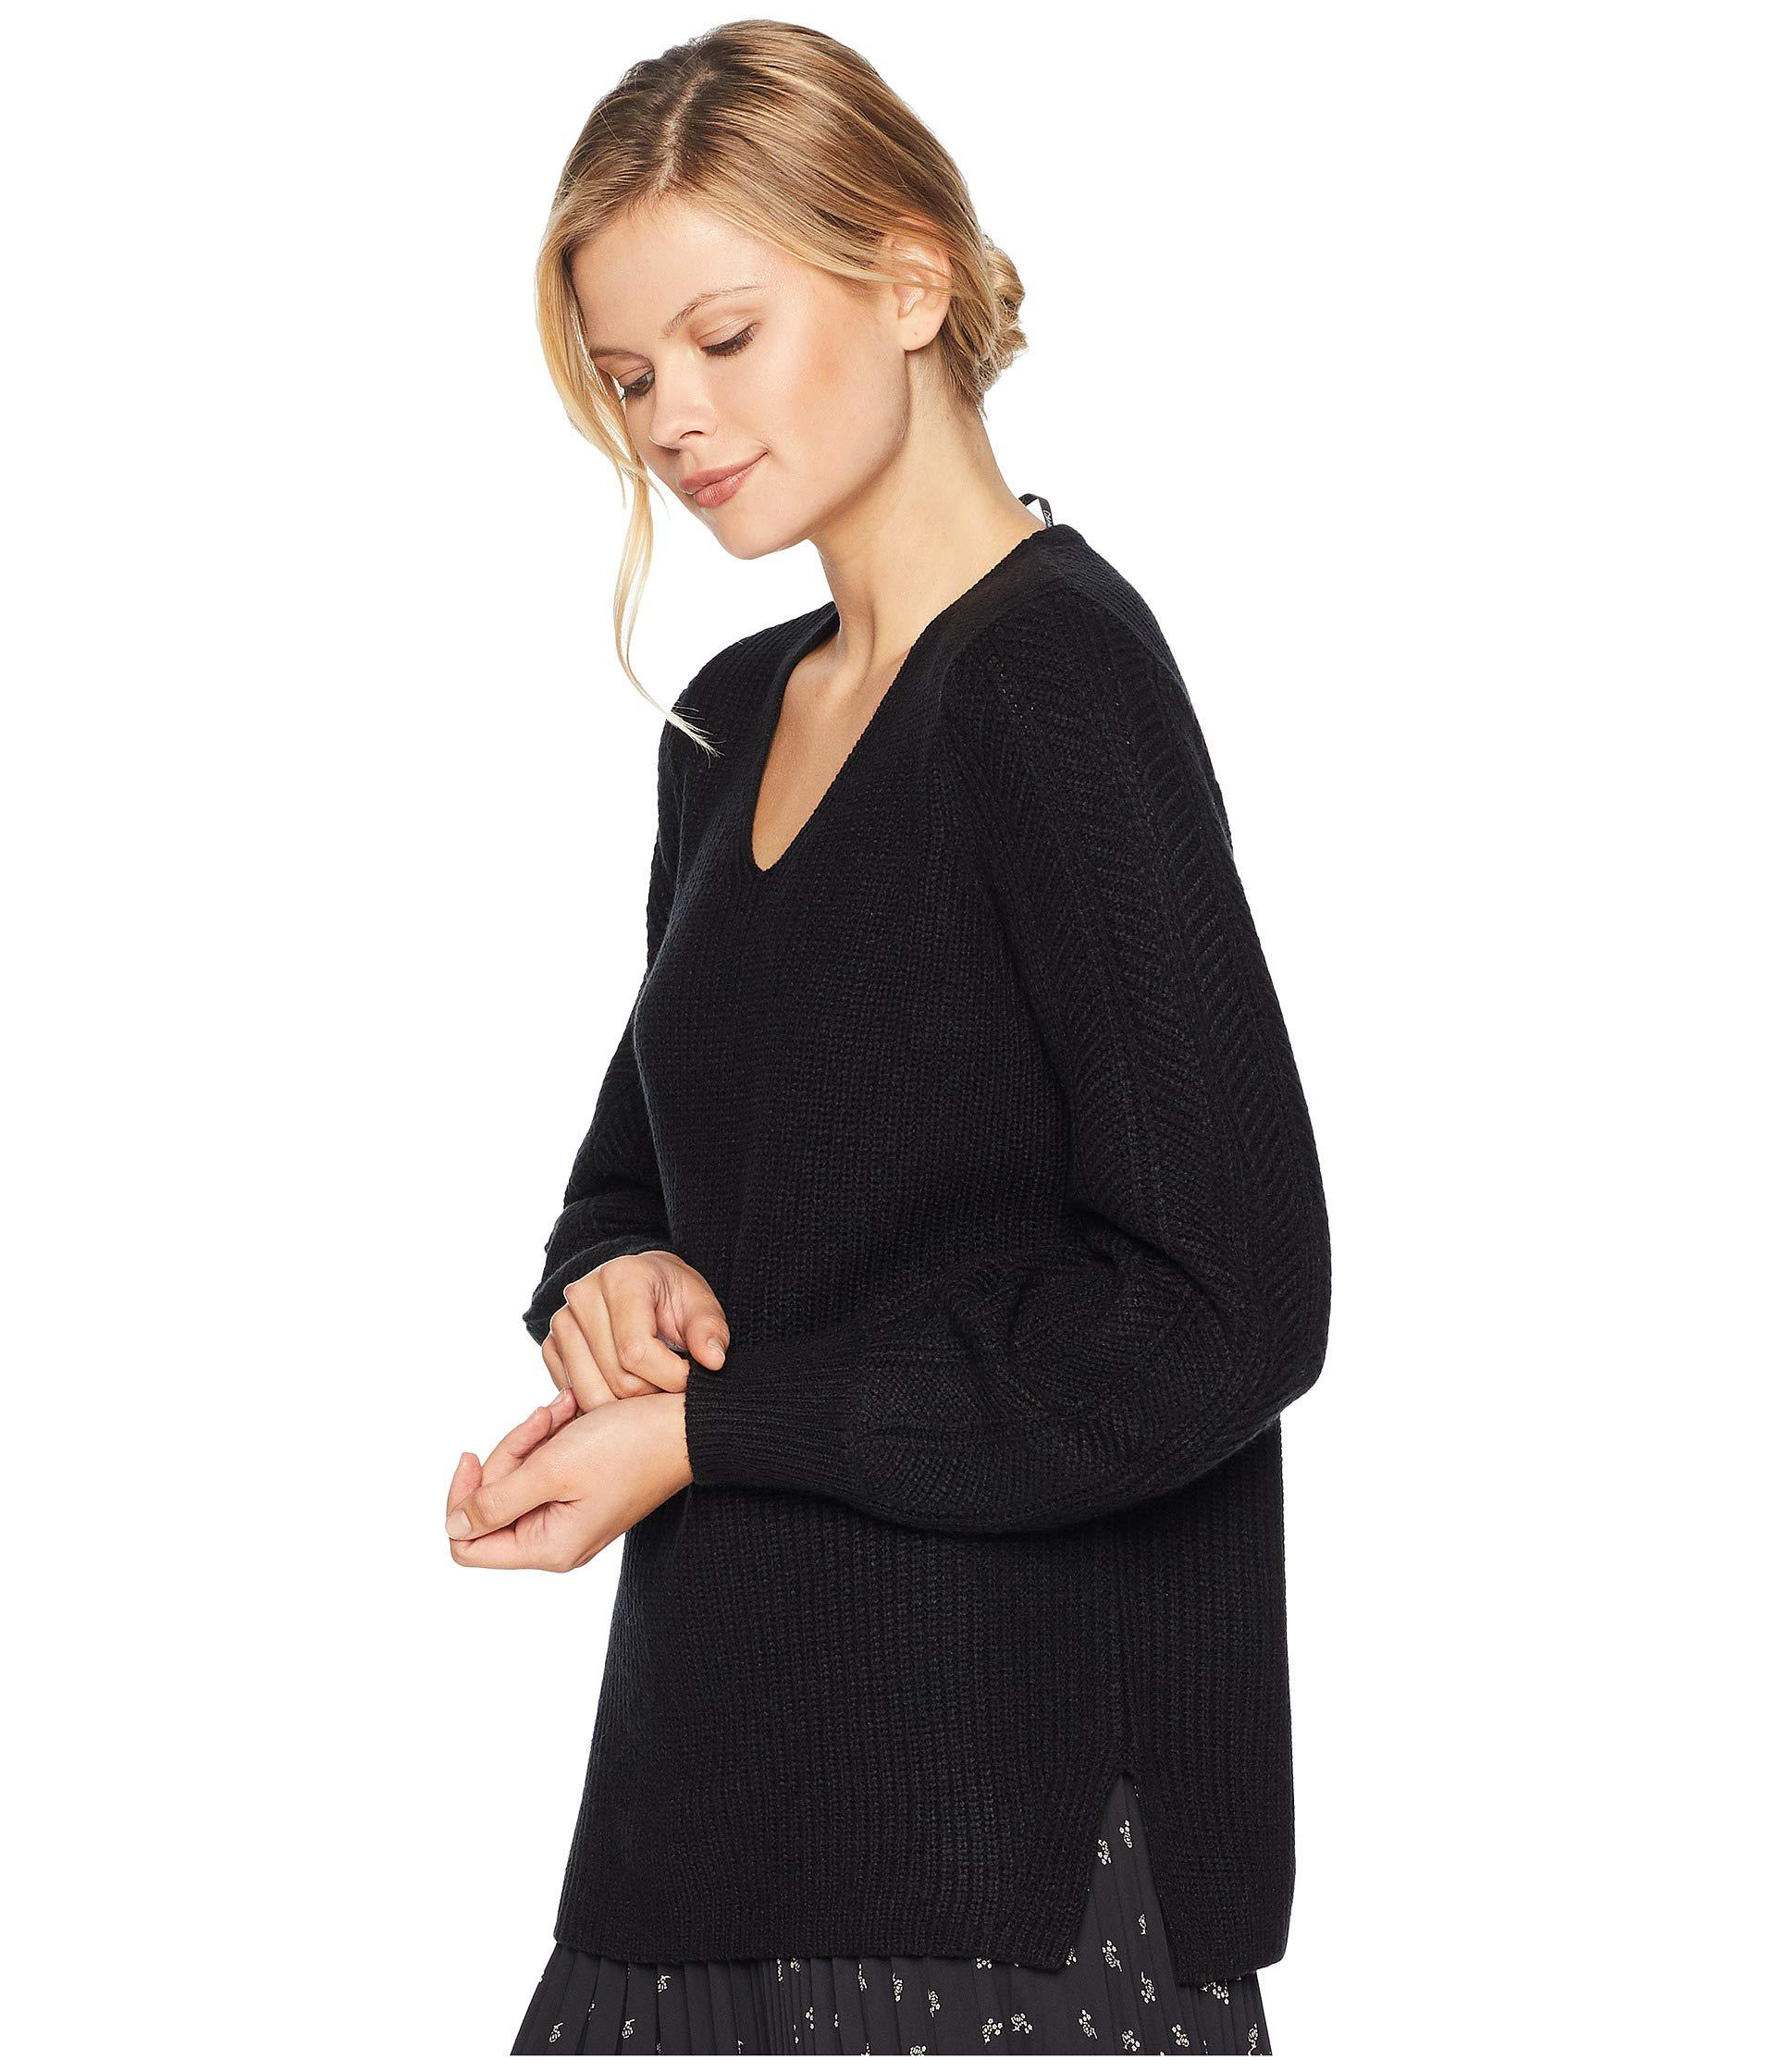 481cef9d6905d Lyst - Calvin Klein V-neck With Poetic Stitch Sleeve Sweater (black)  Women s Sweater in Black